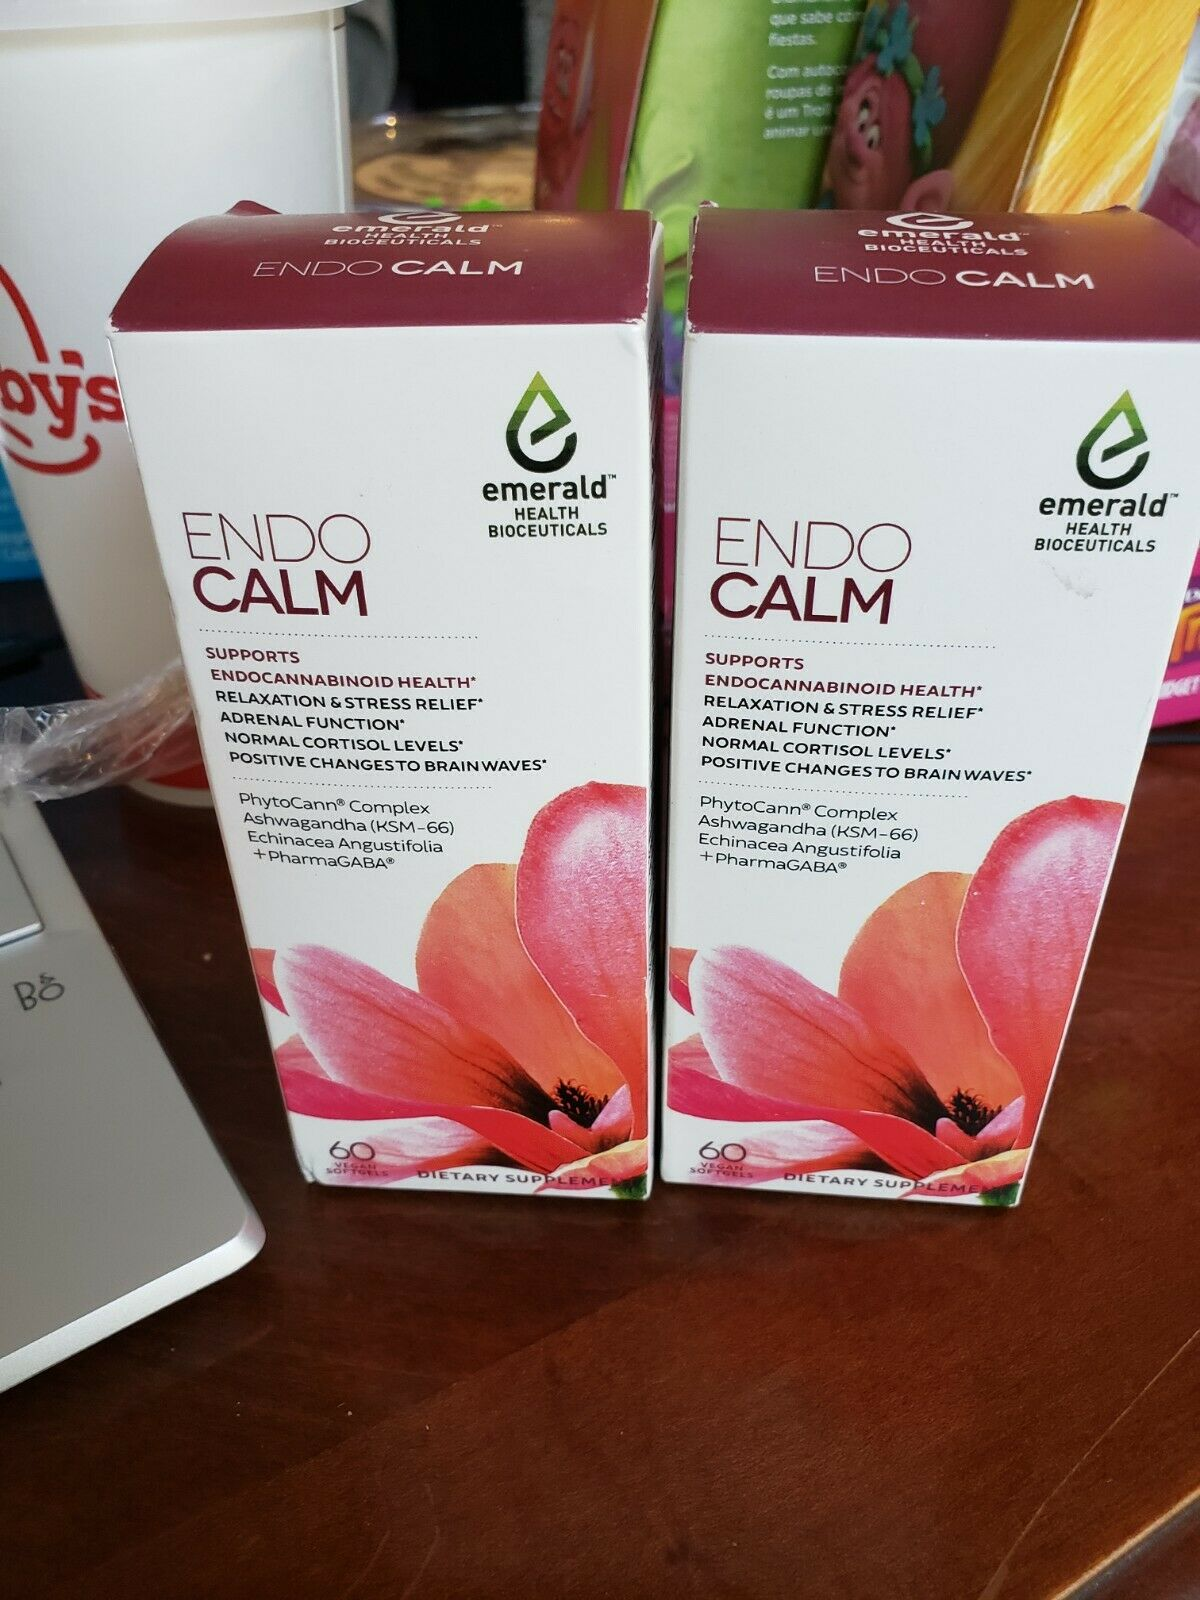 2-Emerald Health Endo Calm 60 EACH = 120ct Total endocalm EXP 7/22